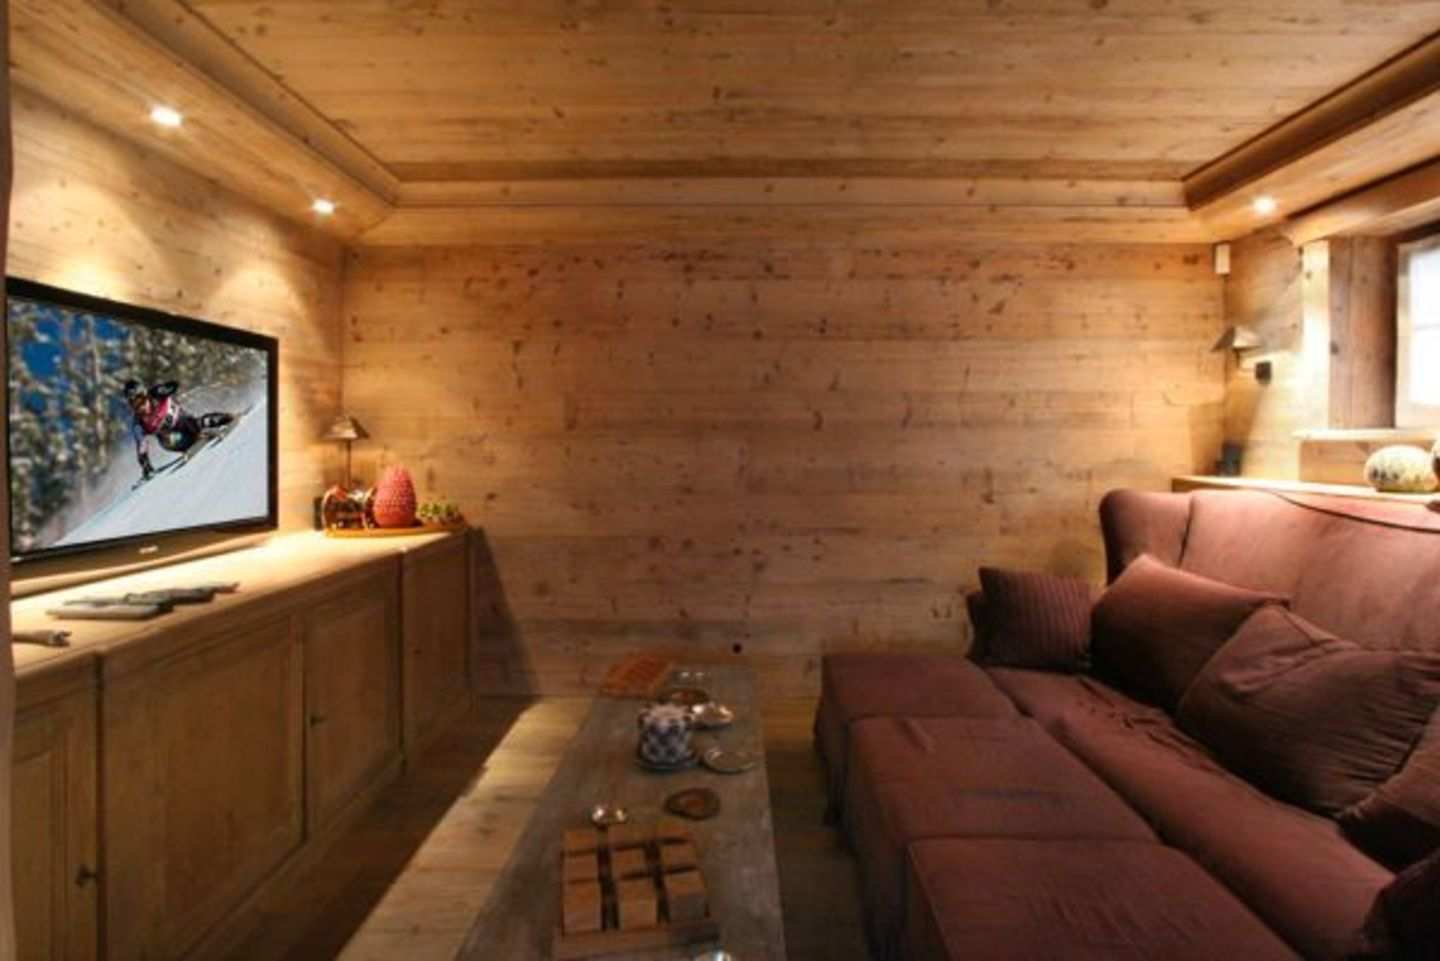 Luxury chalet for rent in St. Moritz